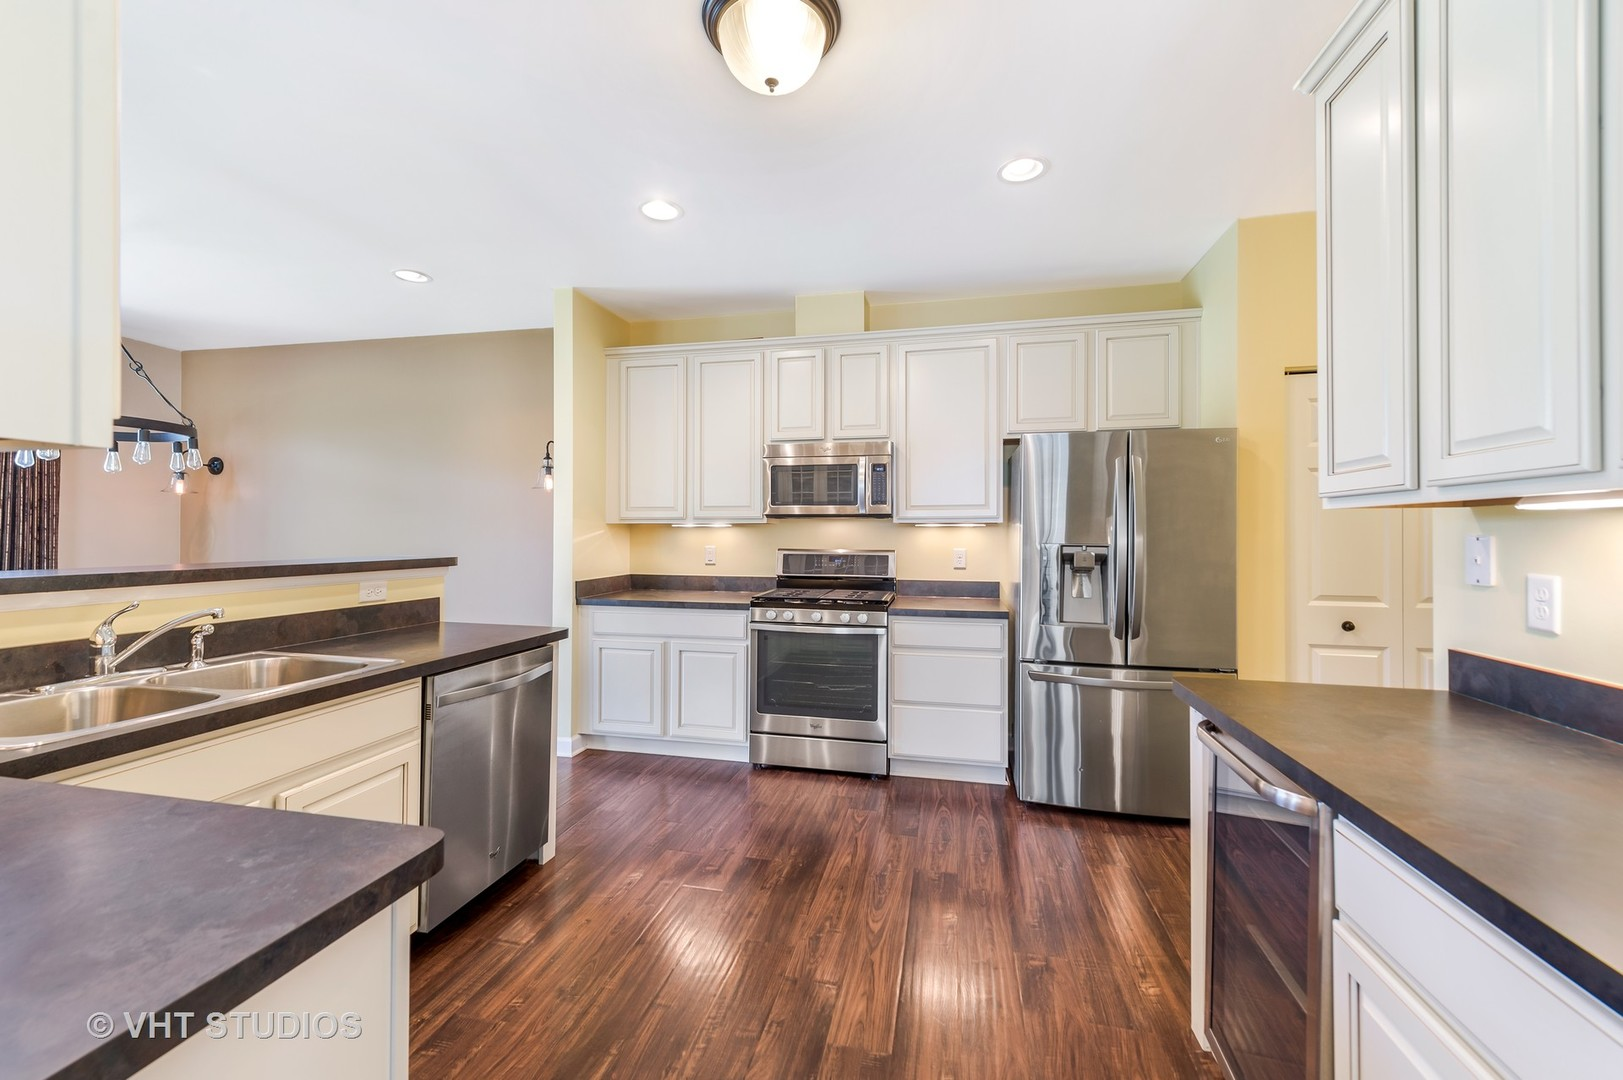 6N338 Whitmore A, ST. CHARLES, Illinois, 60174